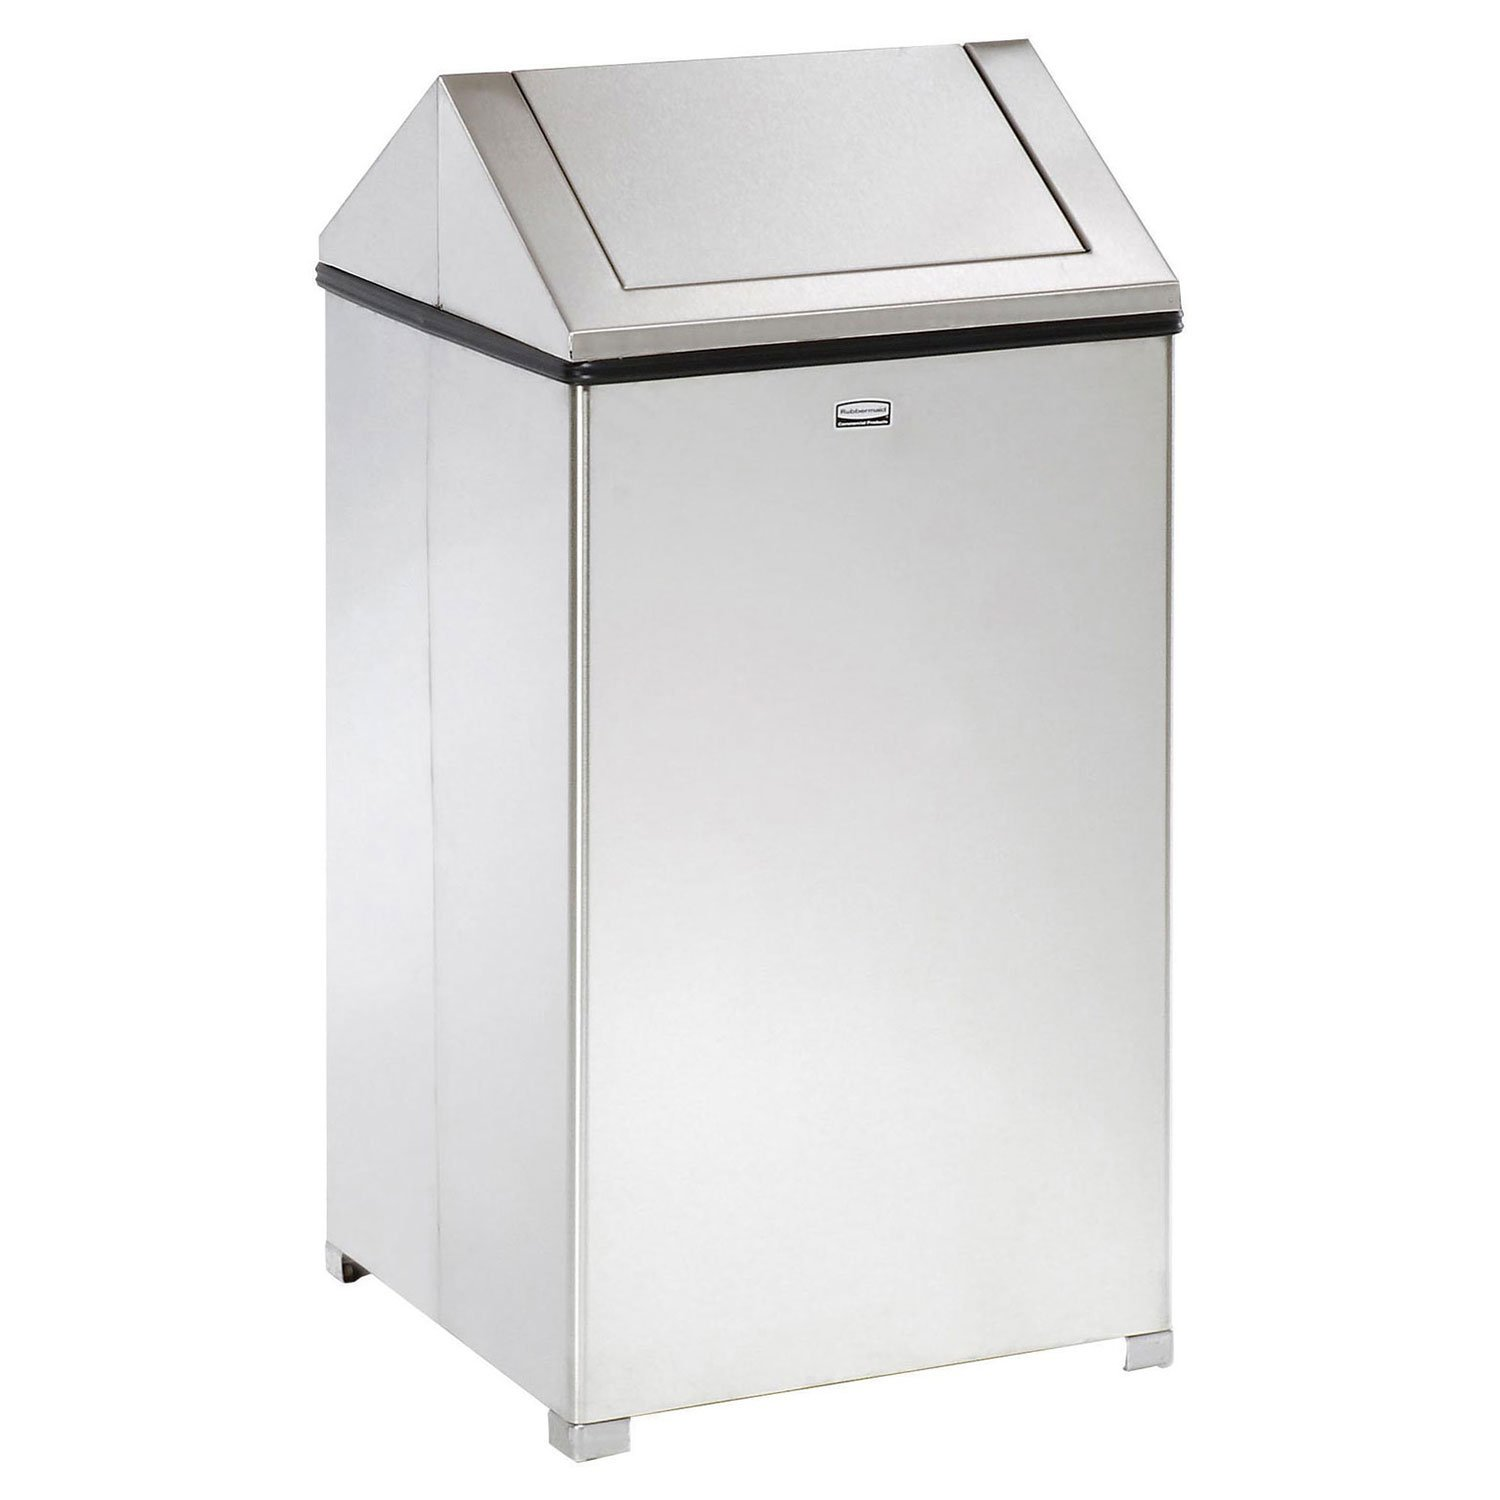 Rubbermaid Commercial WasteMaster Trash Can with Retainer Bands, 40 Gallon, Stainless Steel, FGT1940SSRB